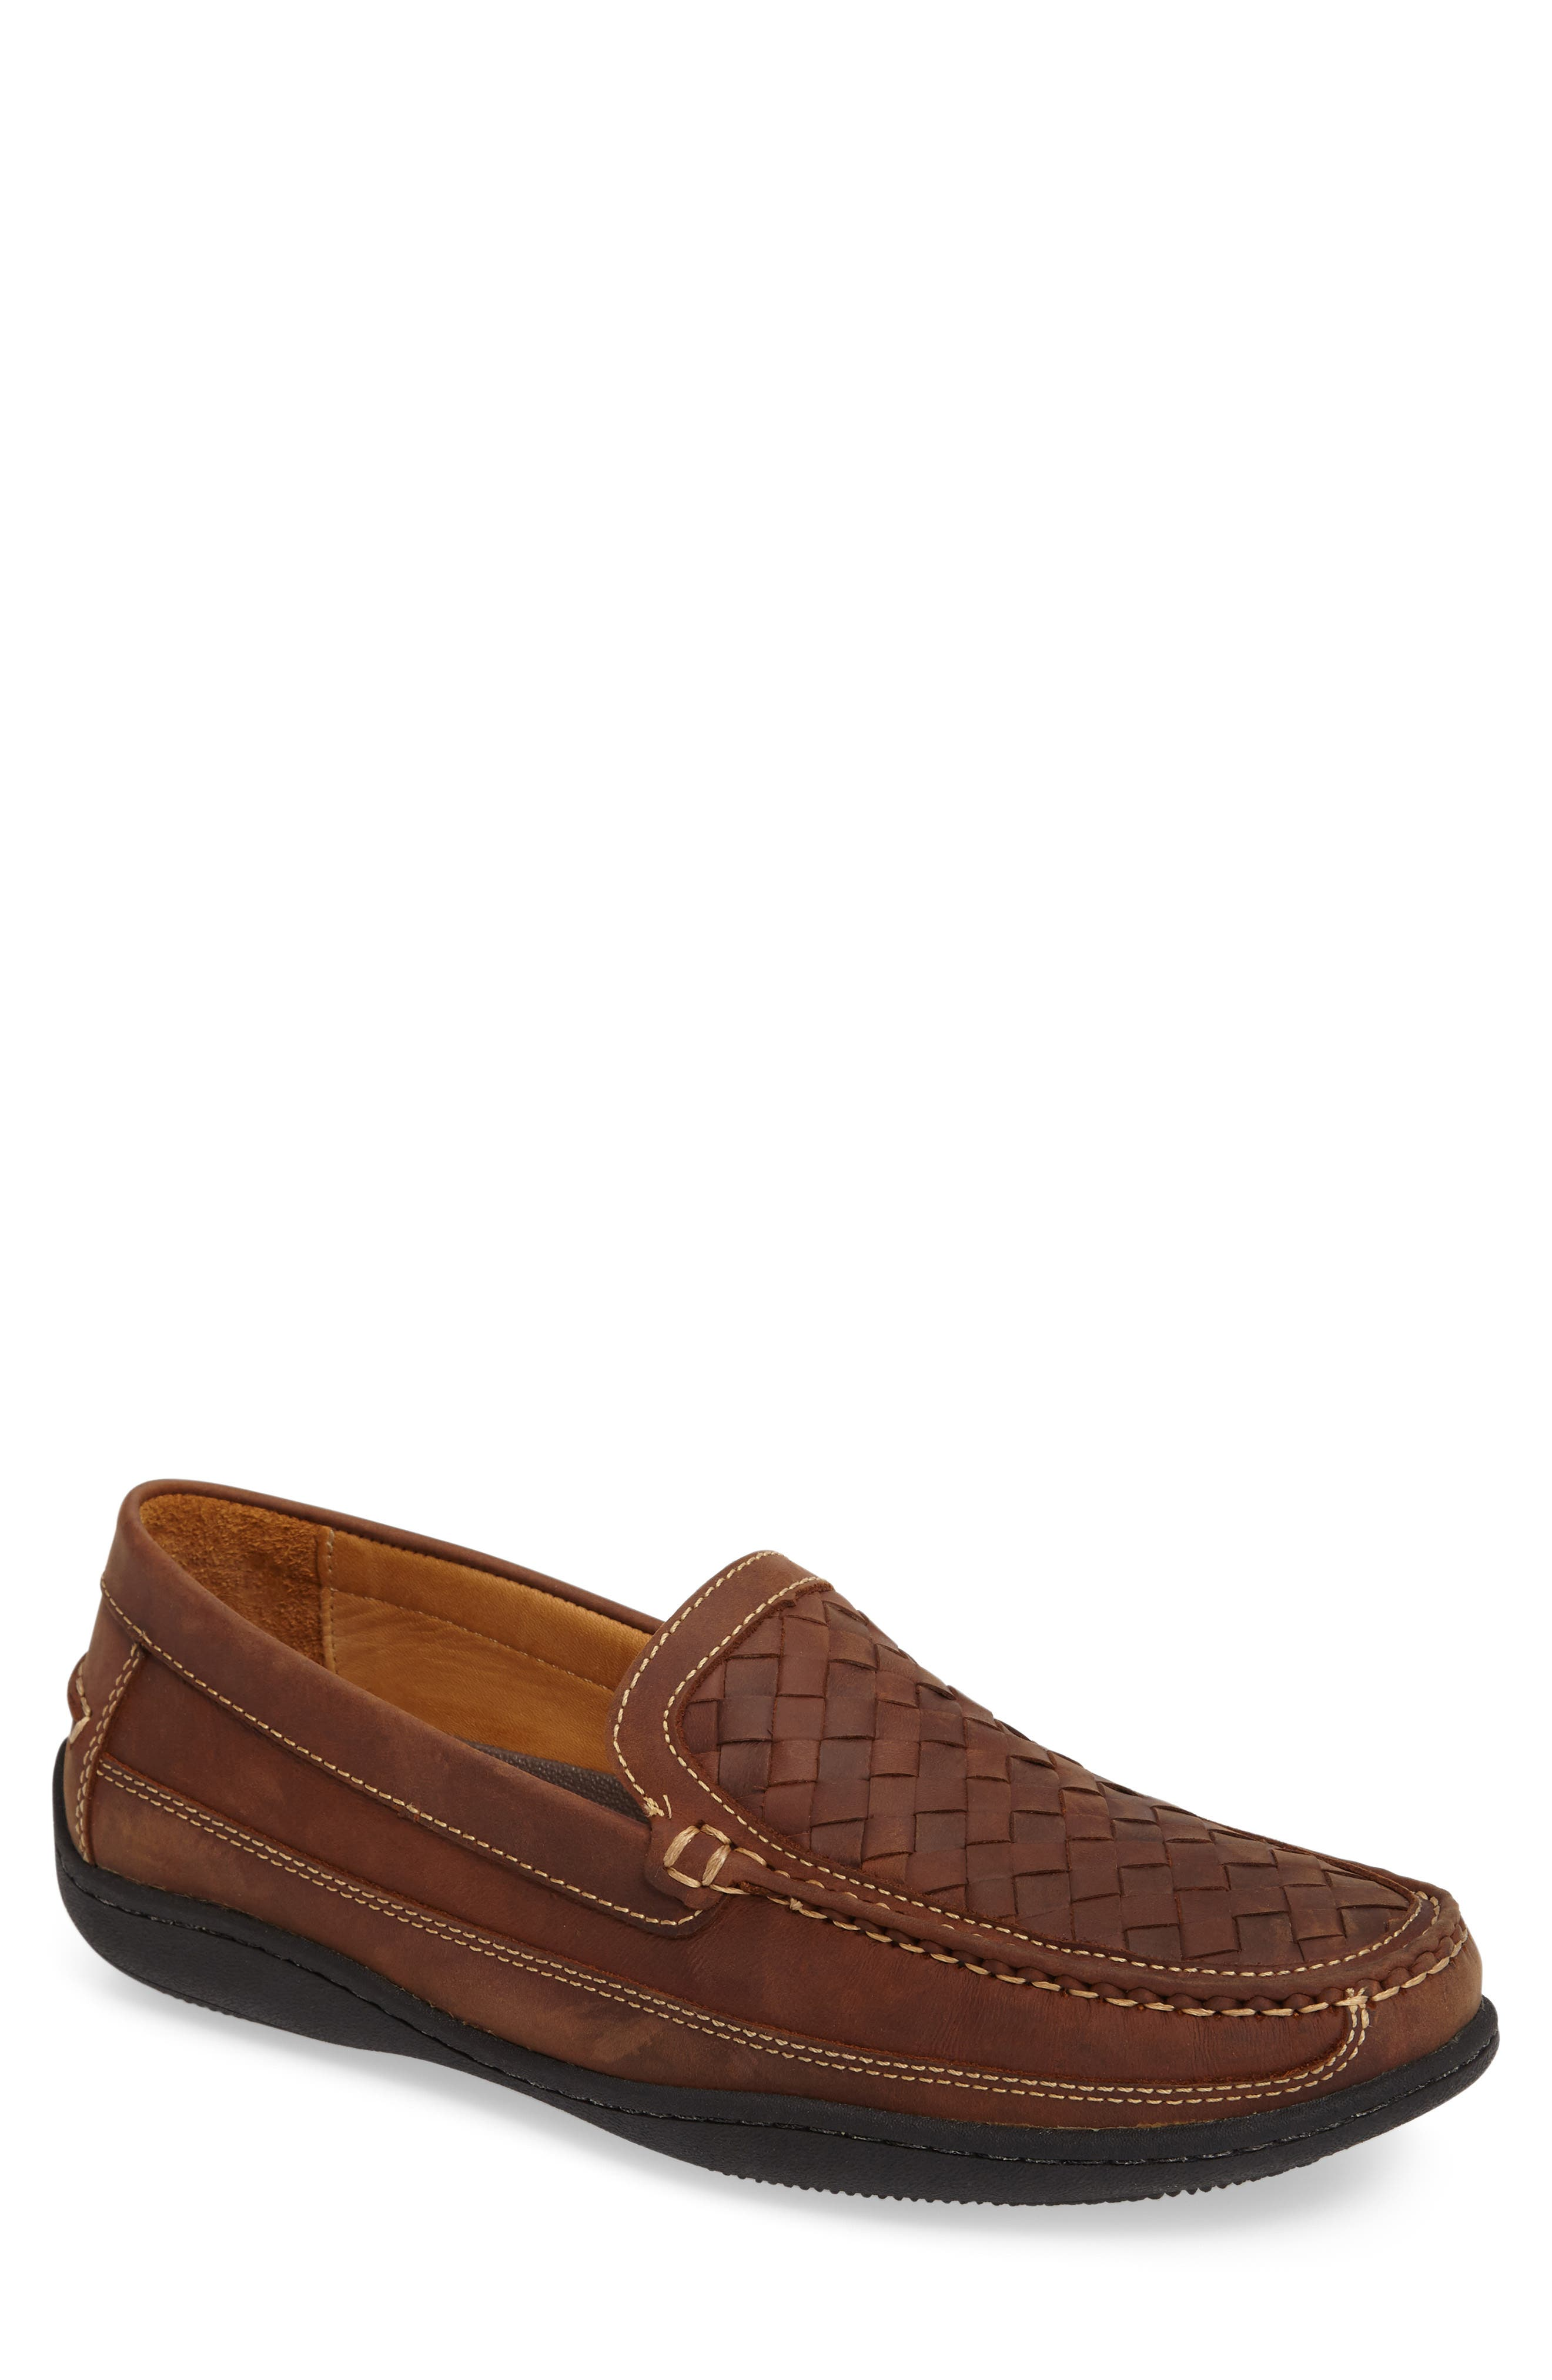 Fowler Woven Loafer,                         Main,                         color, Tan Leather